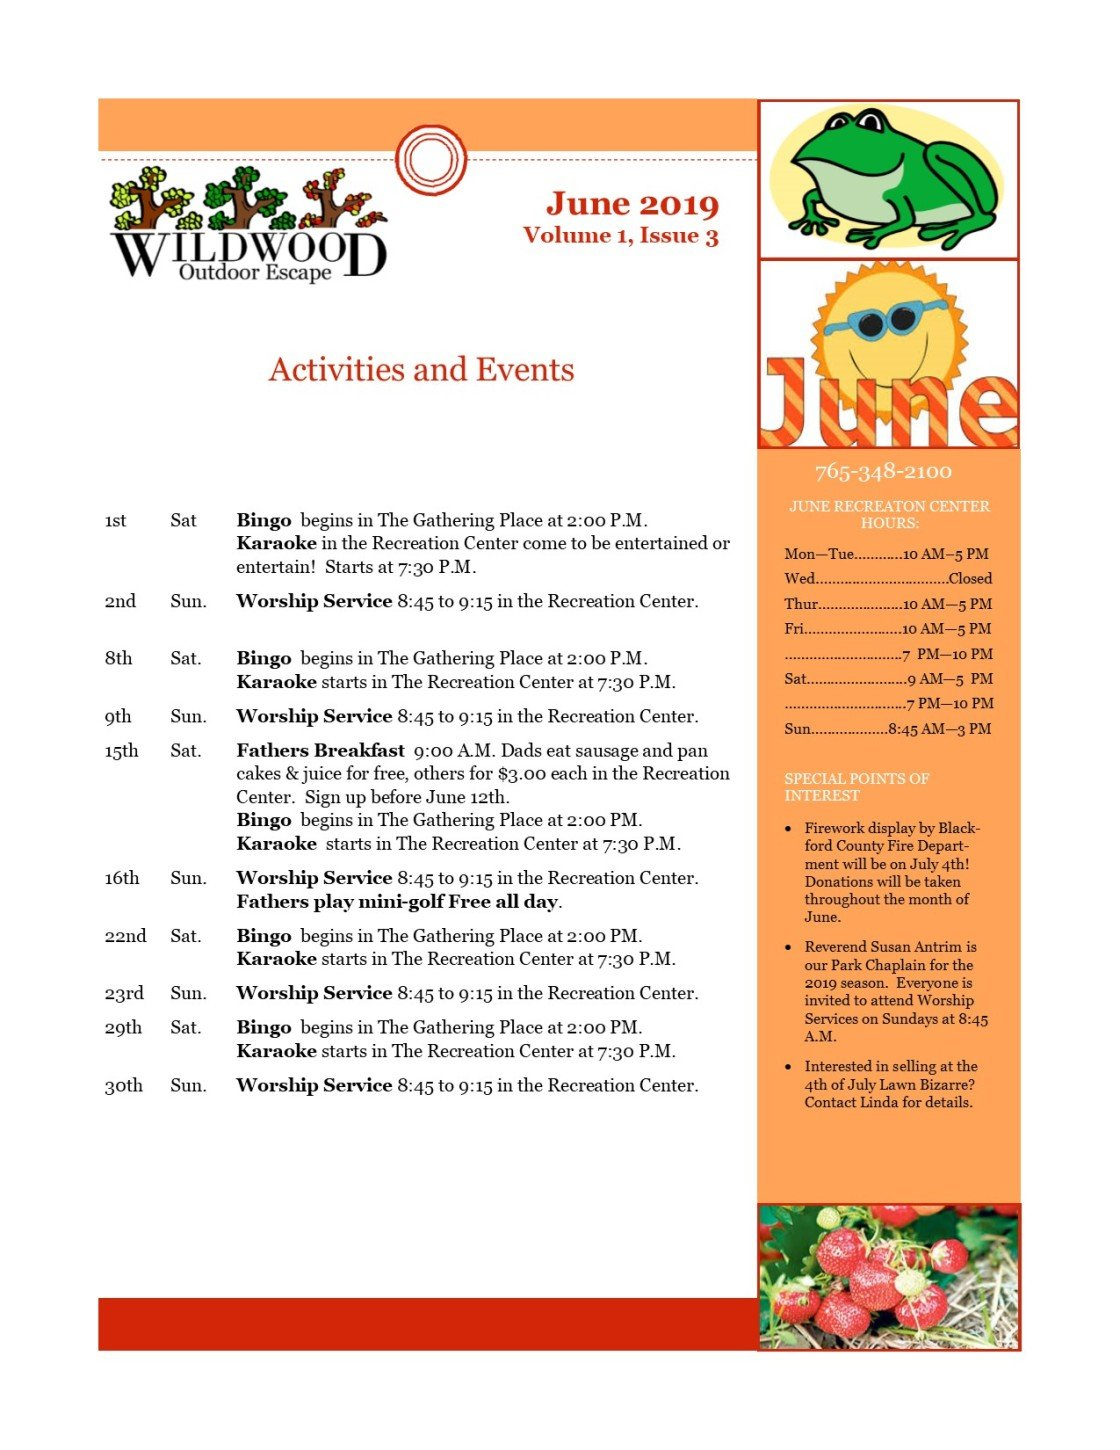 Image of activities and events for June